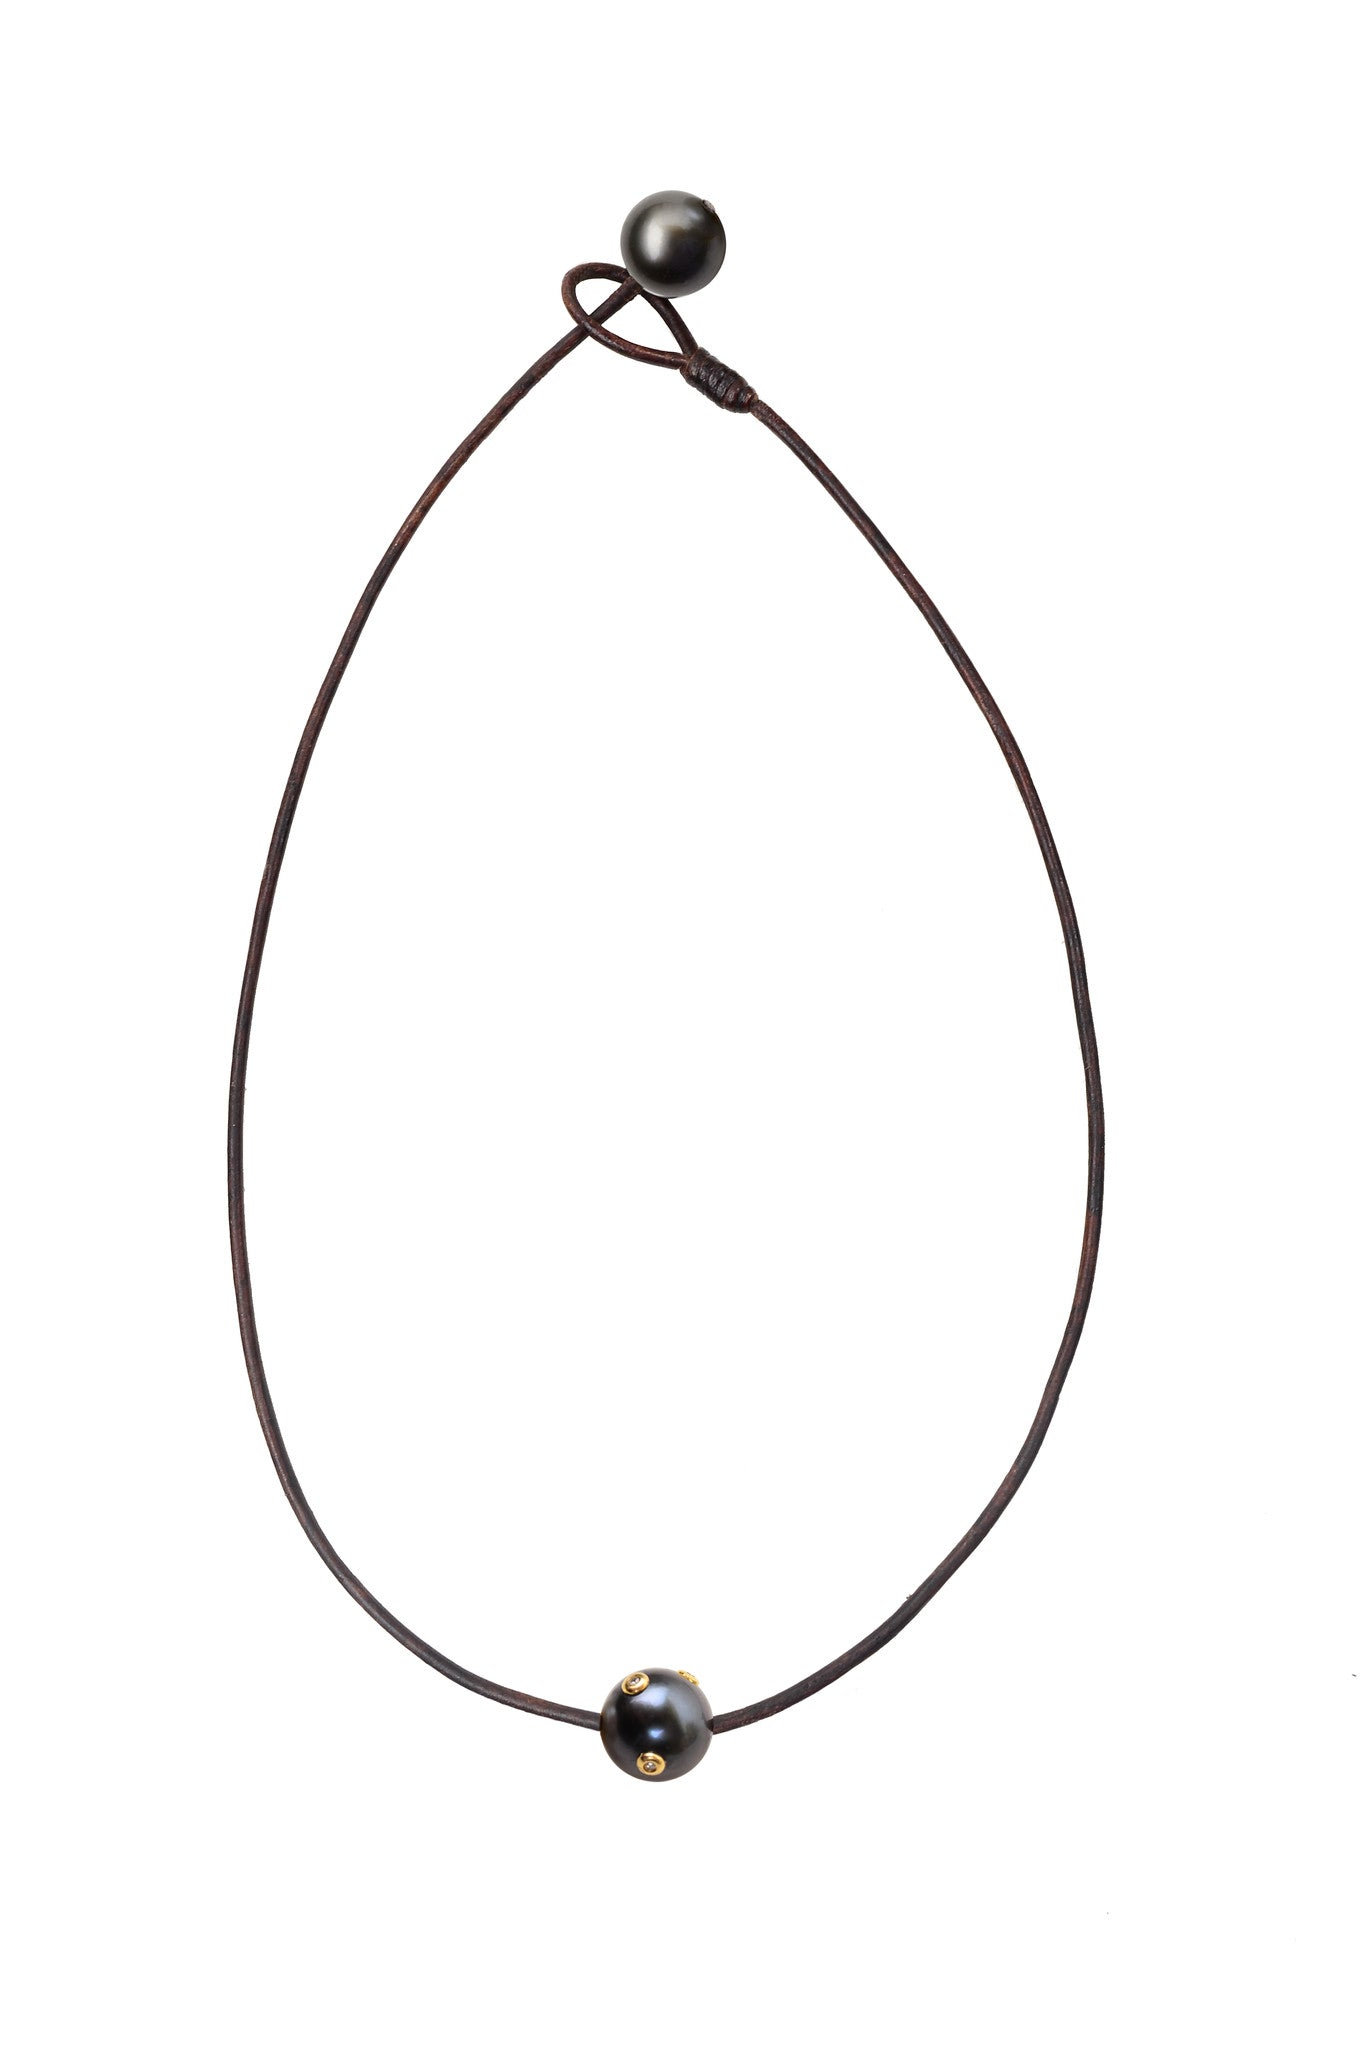 Camelot South Sea Necklace, Tahitian - Hottest Designer Pearl and Leather Jewelry | VINCENT PEACH  - 3